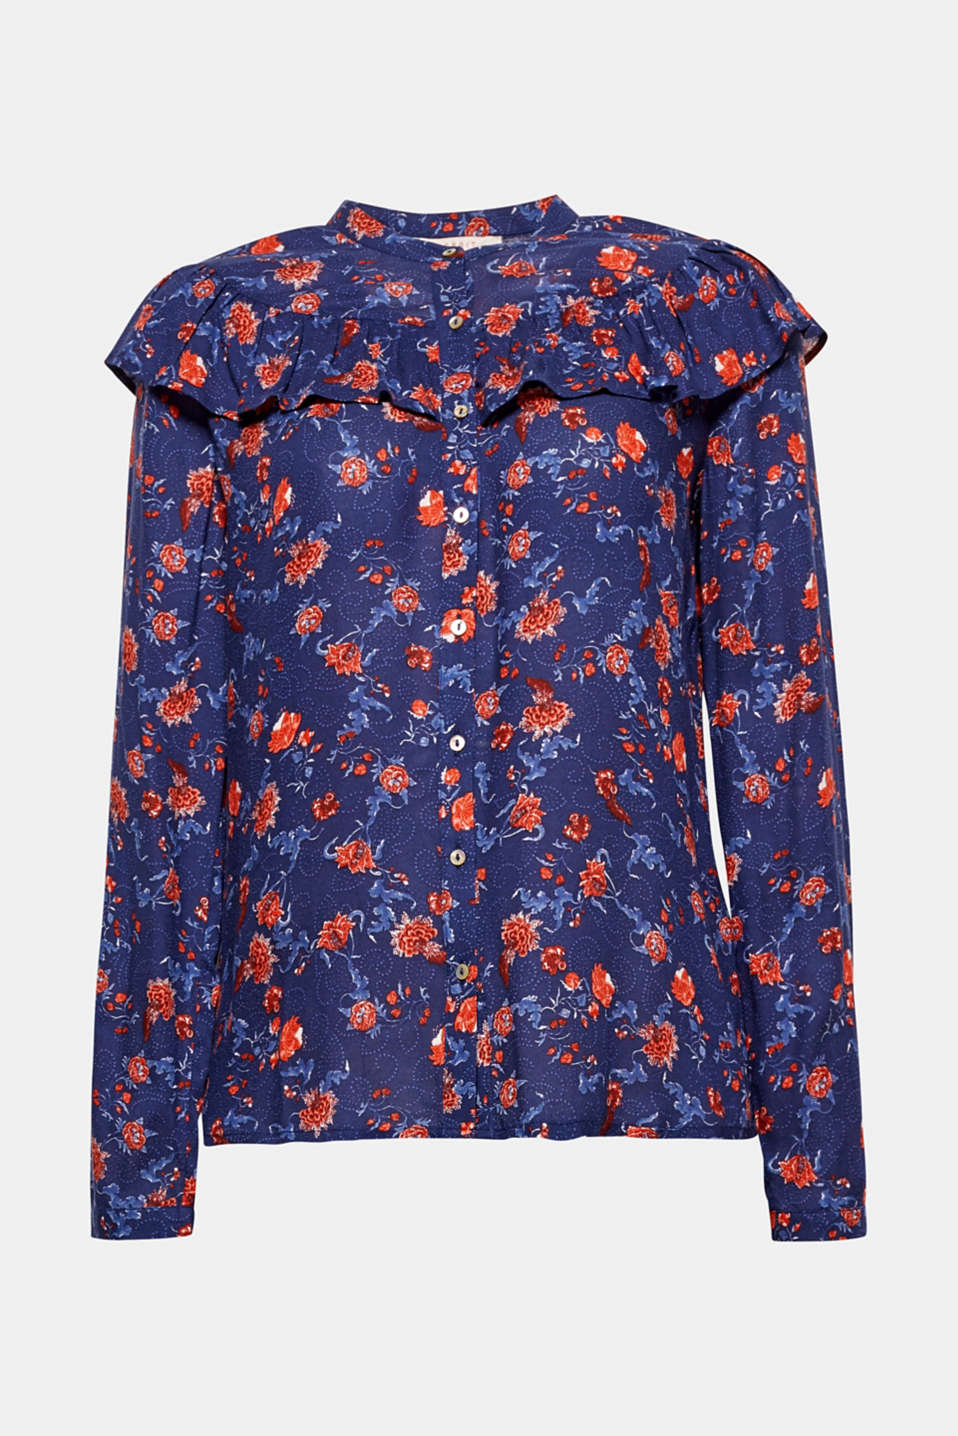 Romantic, feminine and with fine details, this blouse enchants us with a decorative all-over print and frilly accents.